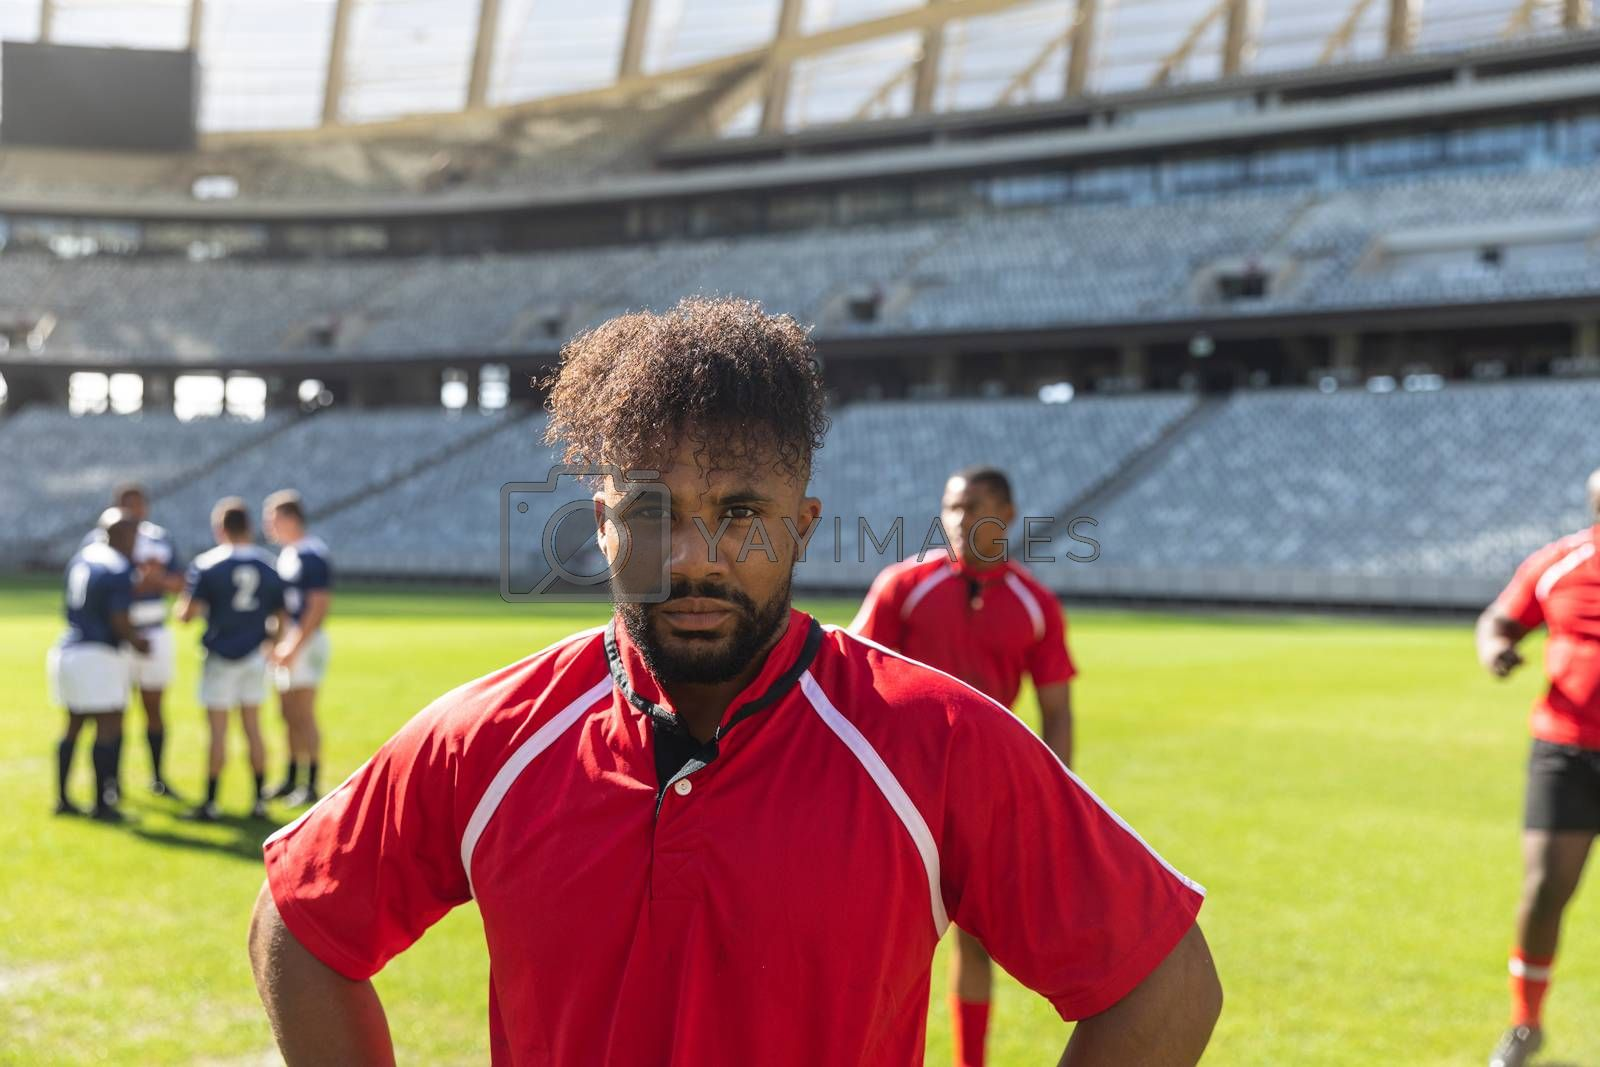 Portrait close up of active African American male rugby player standing in stadium. Diverse rugby team talking to each other in the background.